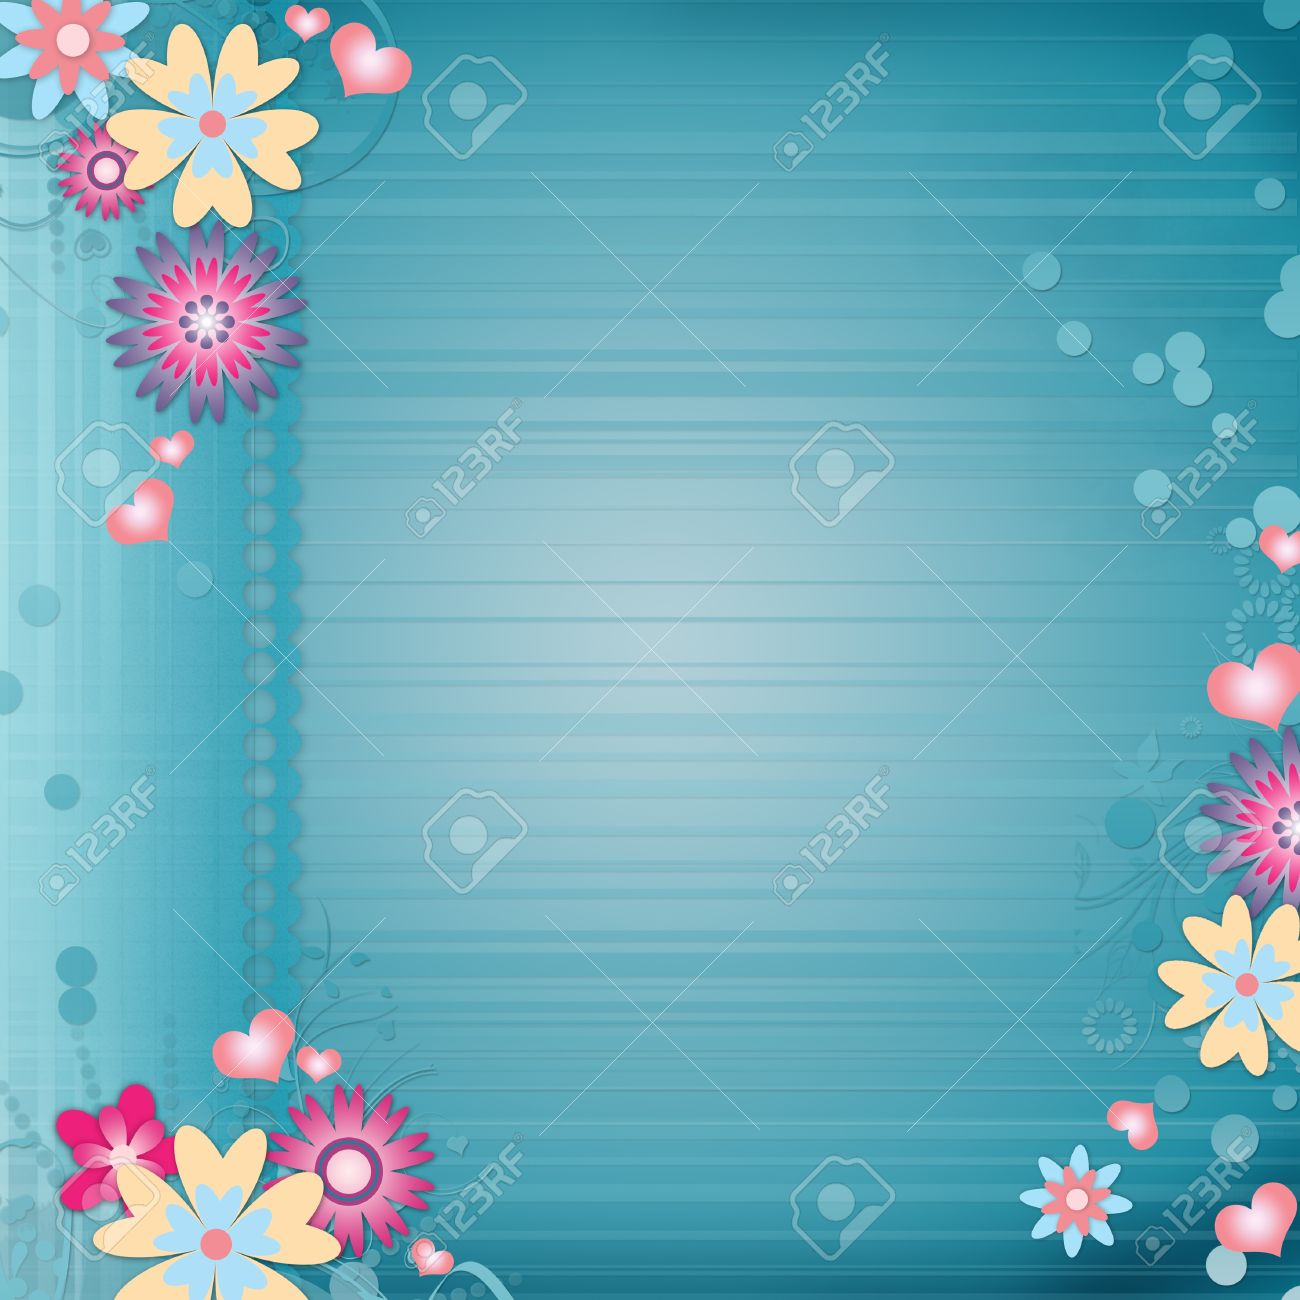 Greeting Card Background With Flowers Hearts Stock Photo Picture